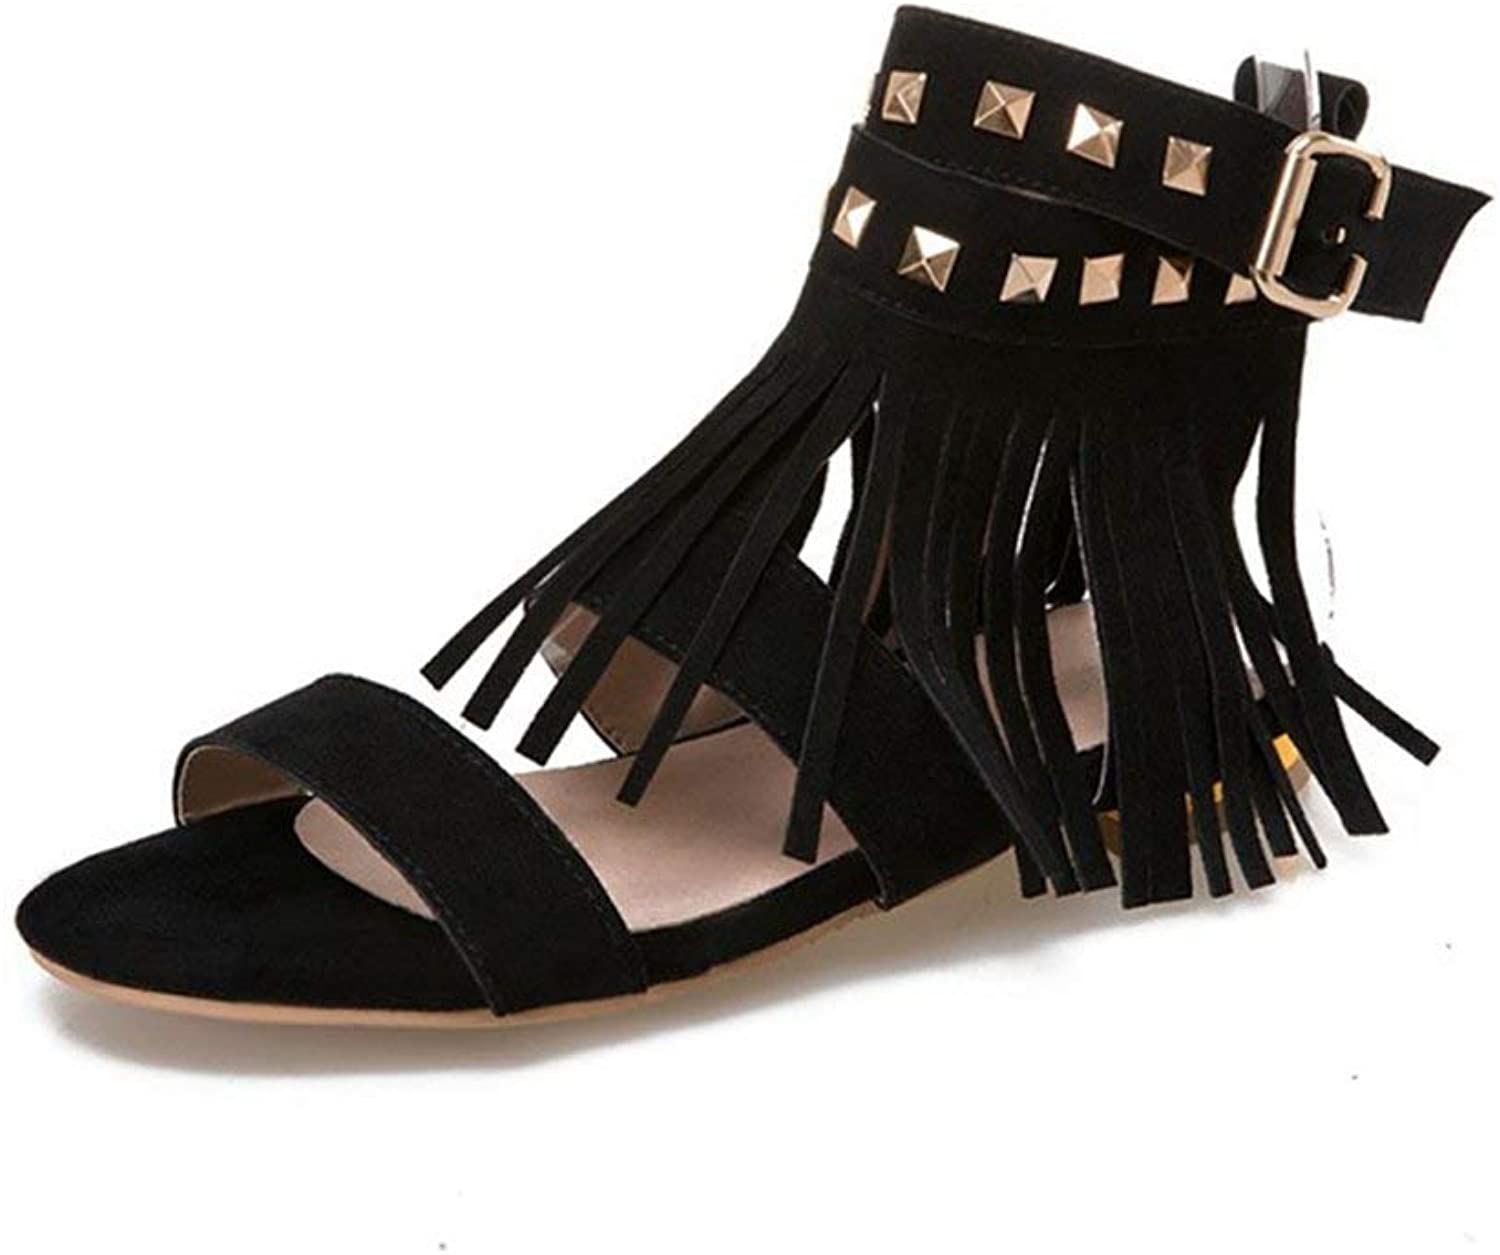 Fashion shoesbox Women's Fringe Strappy Flat Sandals Open Toe Comfort Buckle Strap Rivets Roman Dress Low Heel Sandals